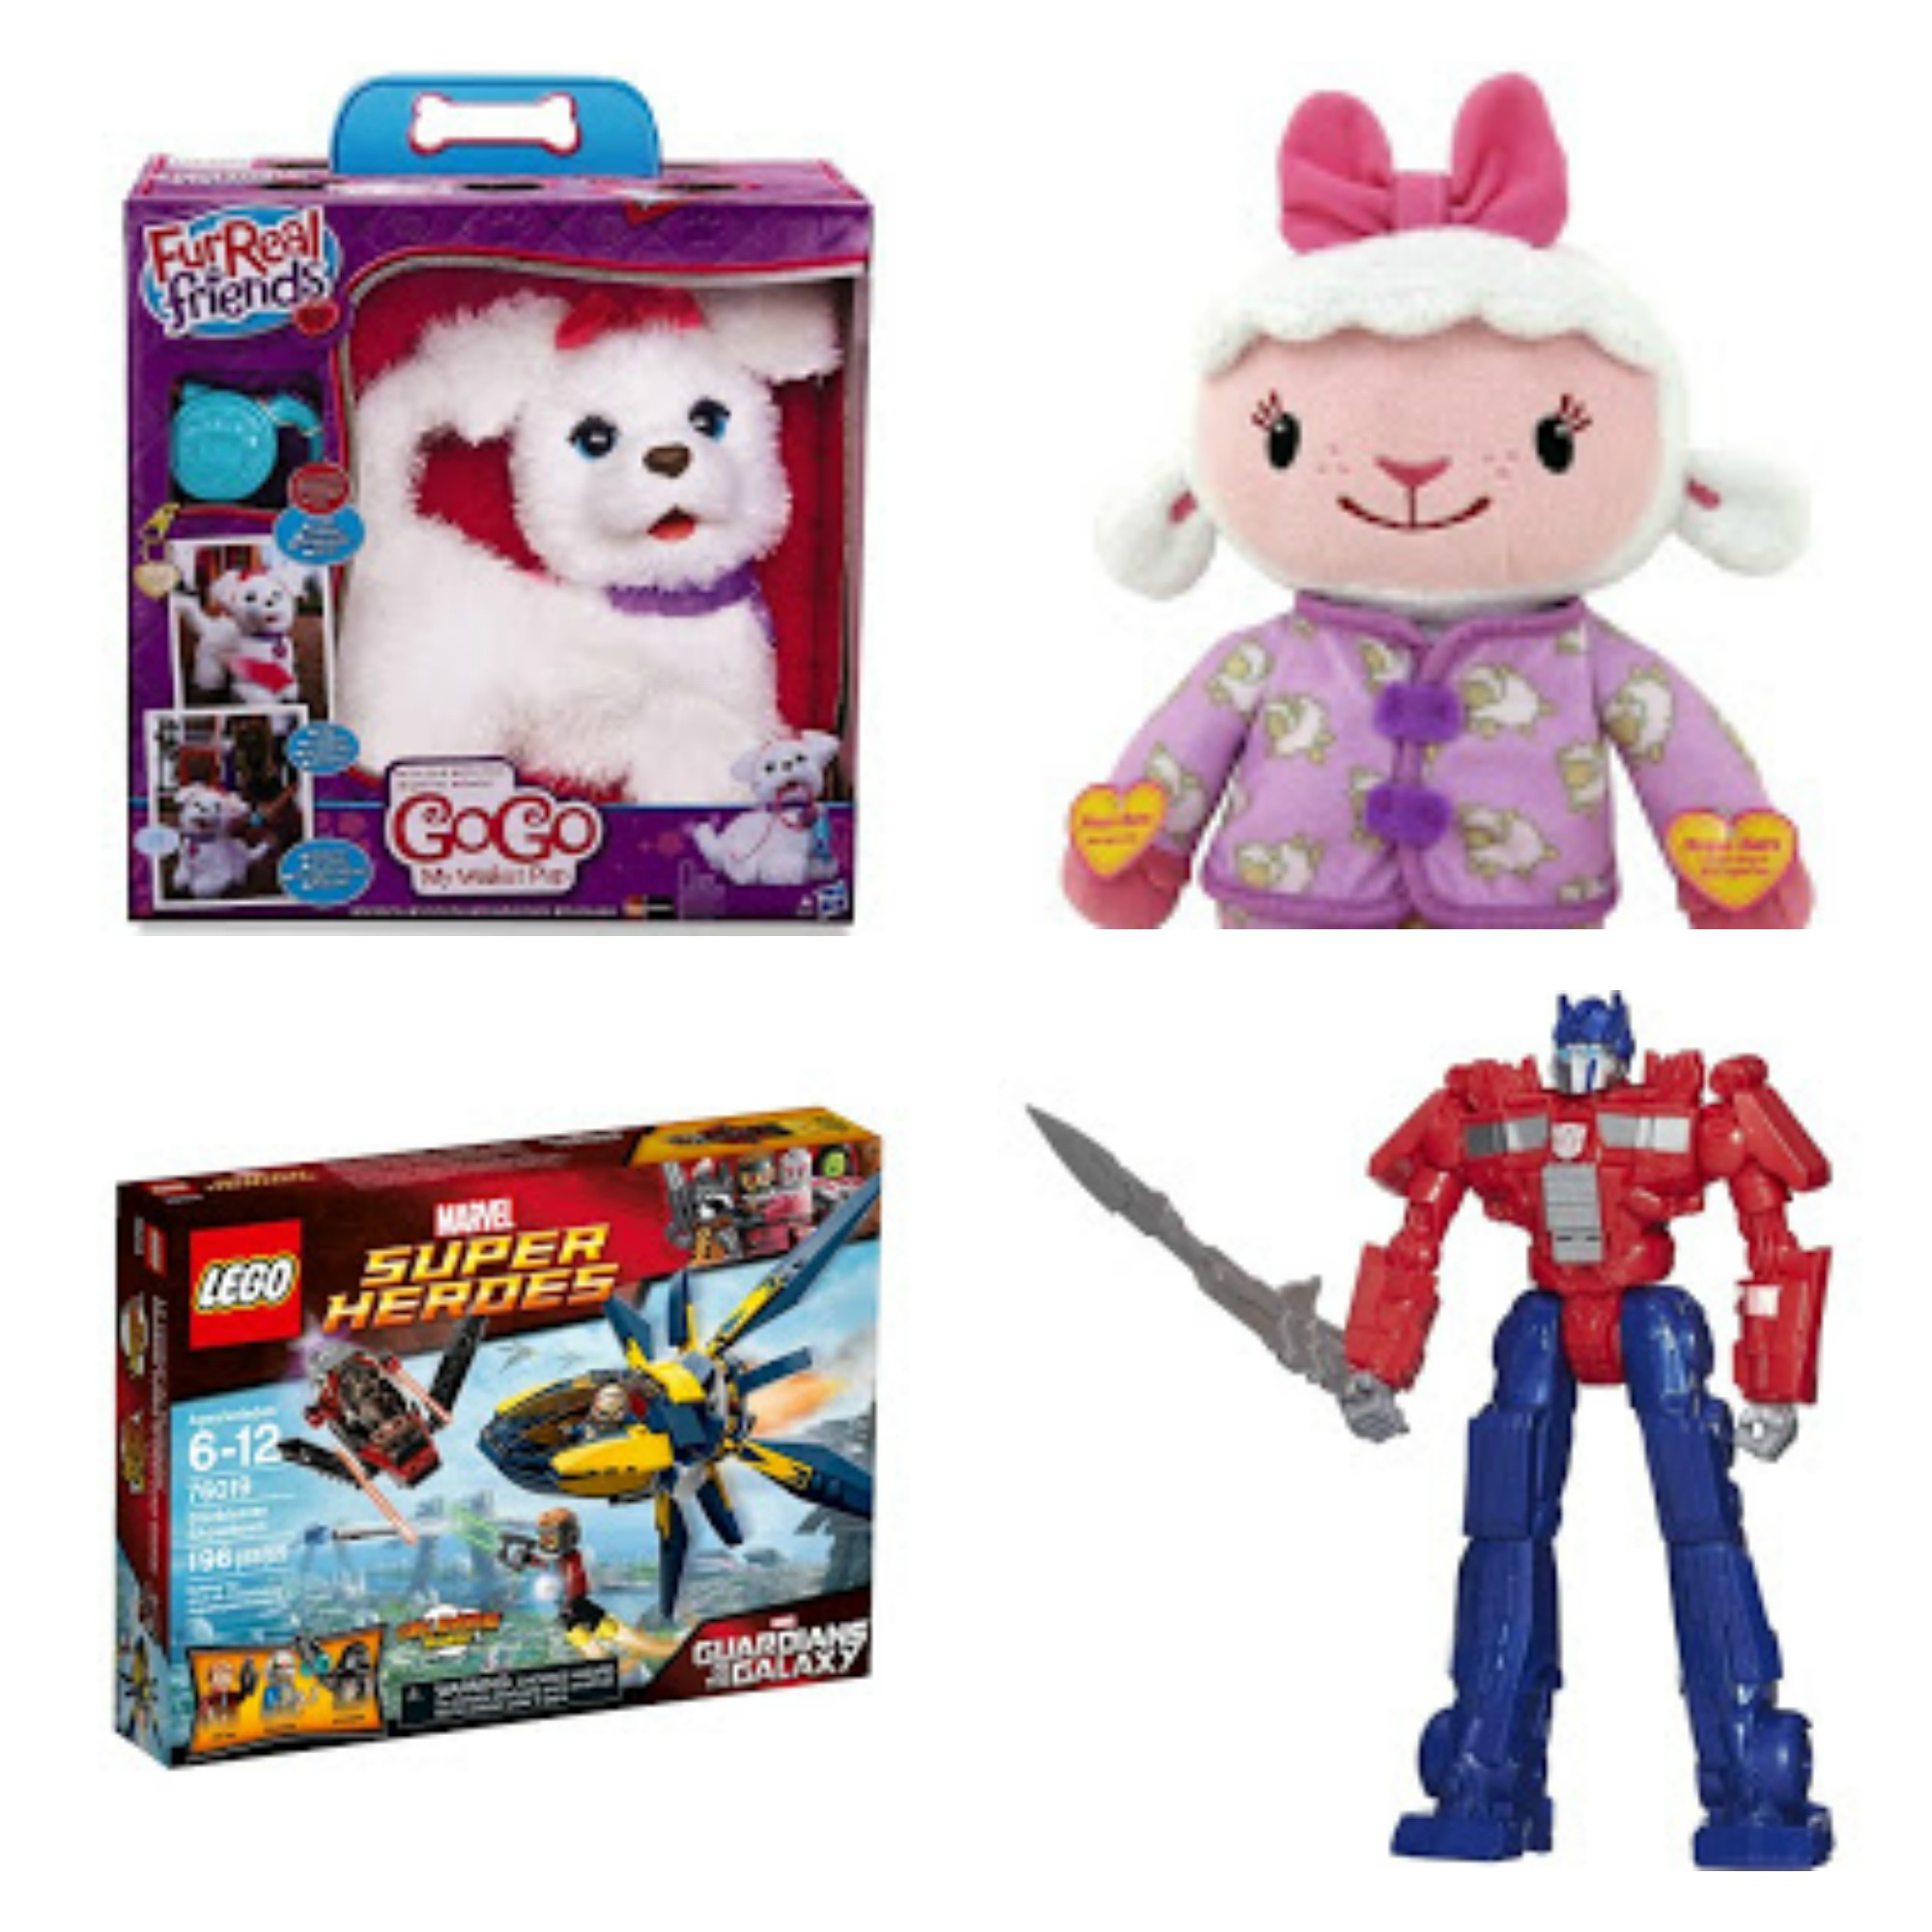 Kmart s Fab 15 Toy Gift Guide Fab15ToysCGC NEPA Mom